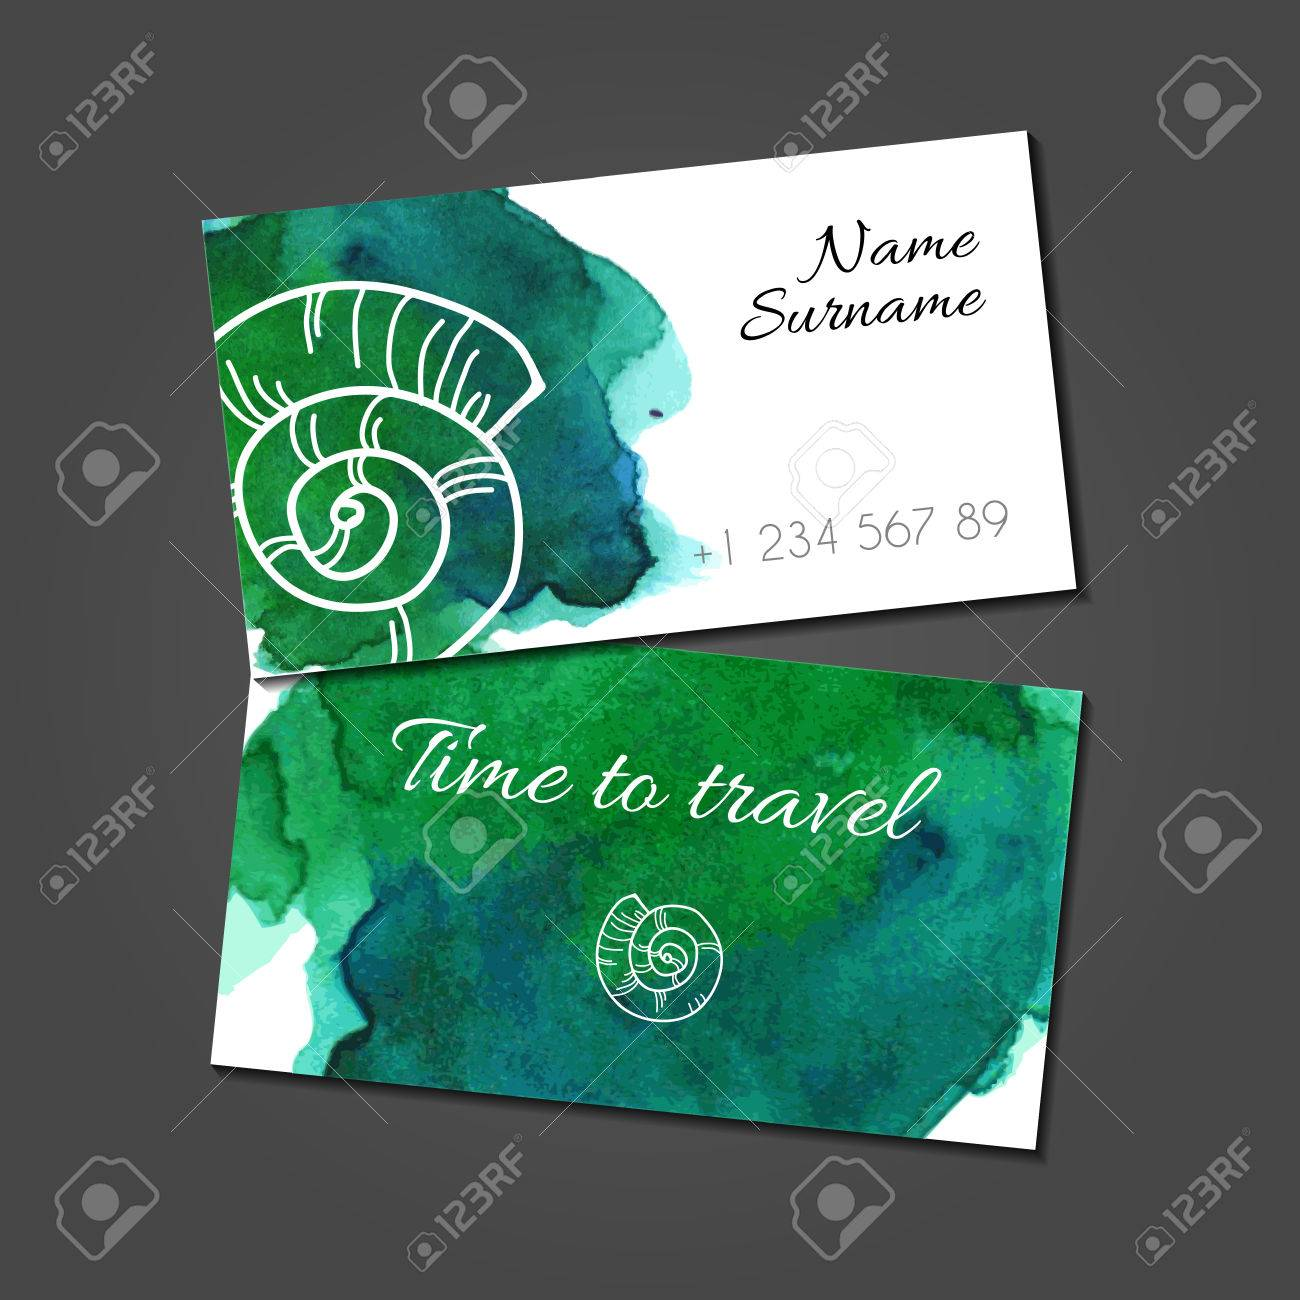 business card template with stylized illustration of seashell